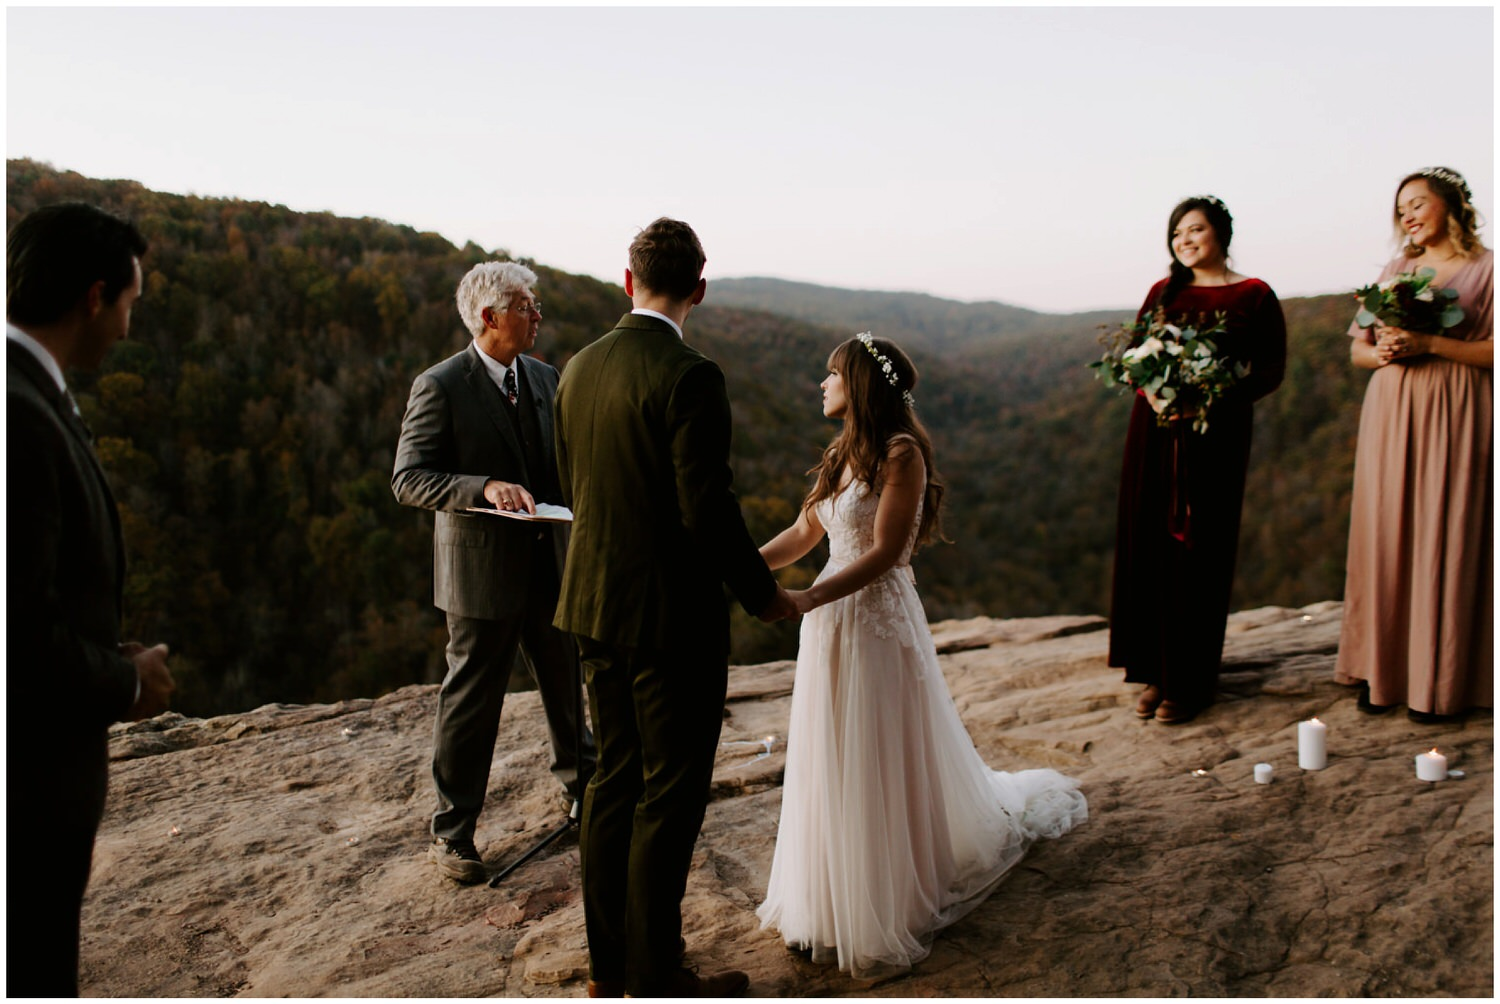 cliffside candlelit wedding ceremony